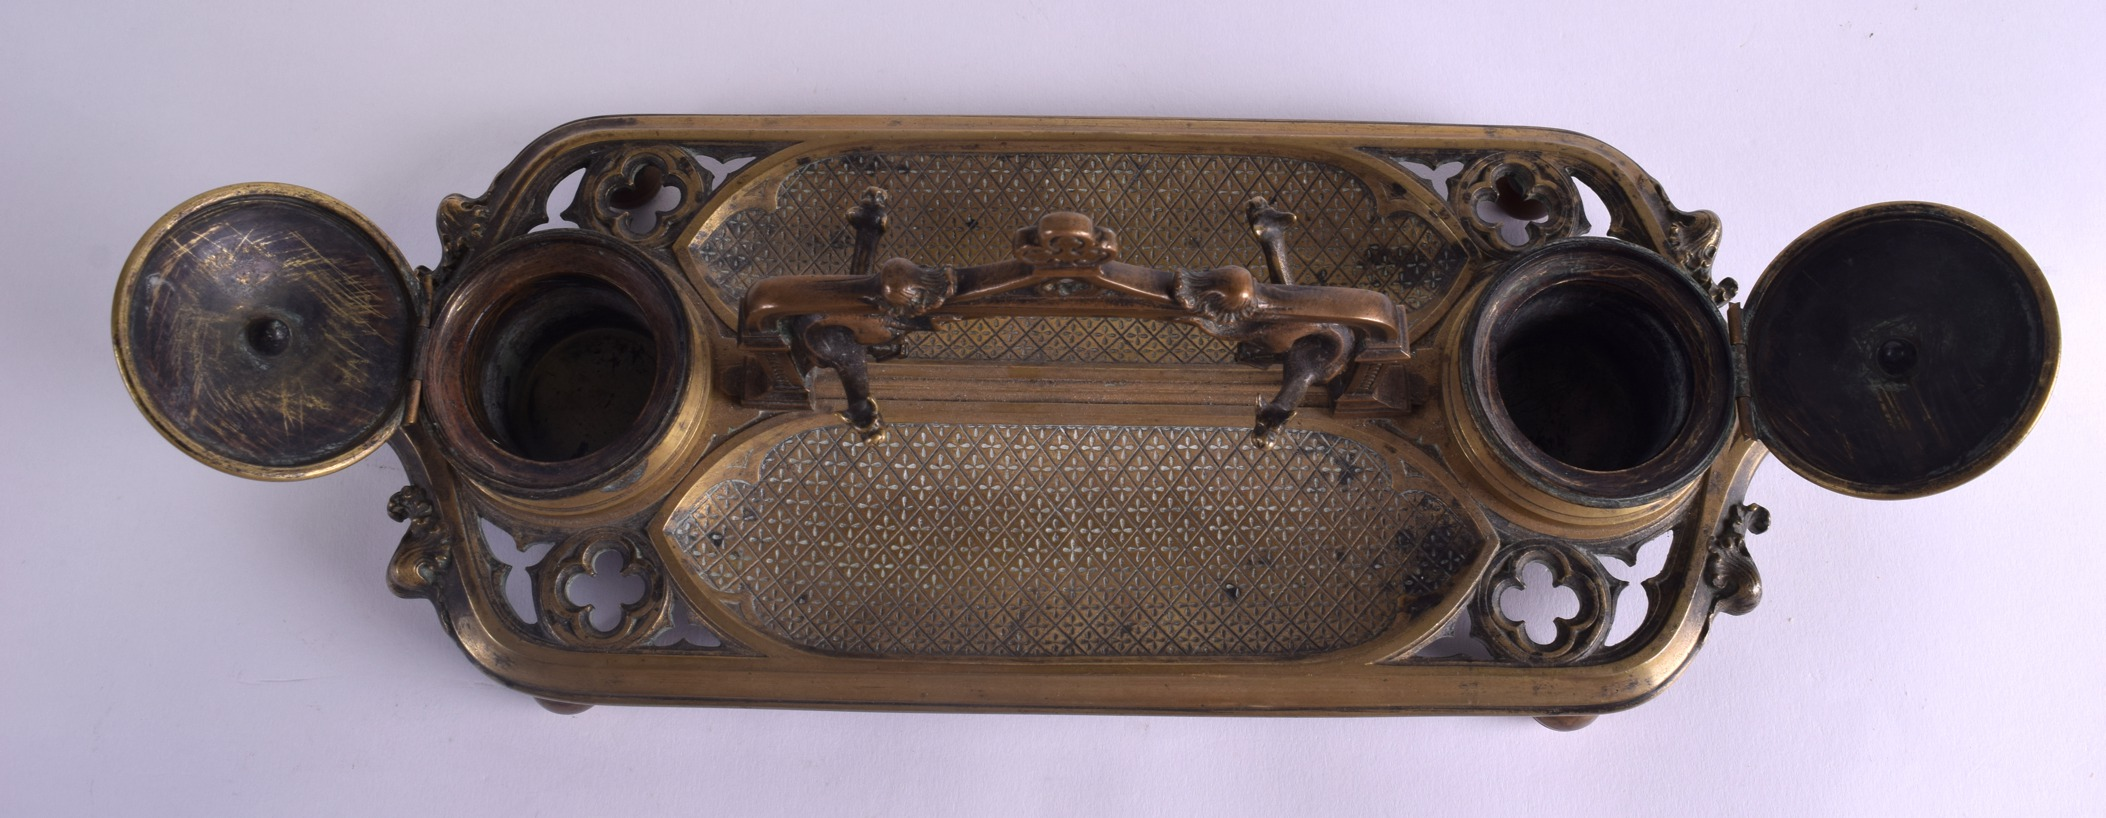 Lot 489 - A 19TH CENTURY FRENCH GOTHIC REVIVAL BRONZE DOUBLE INKWELL of rectangular form with open work